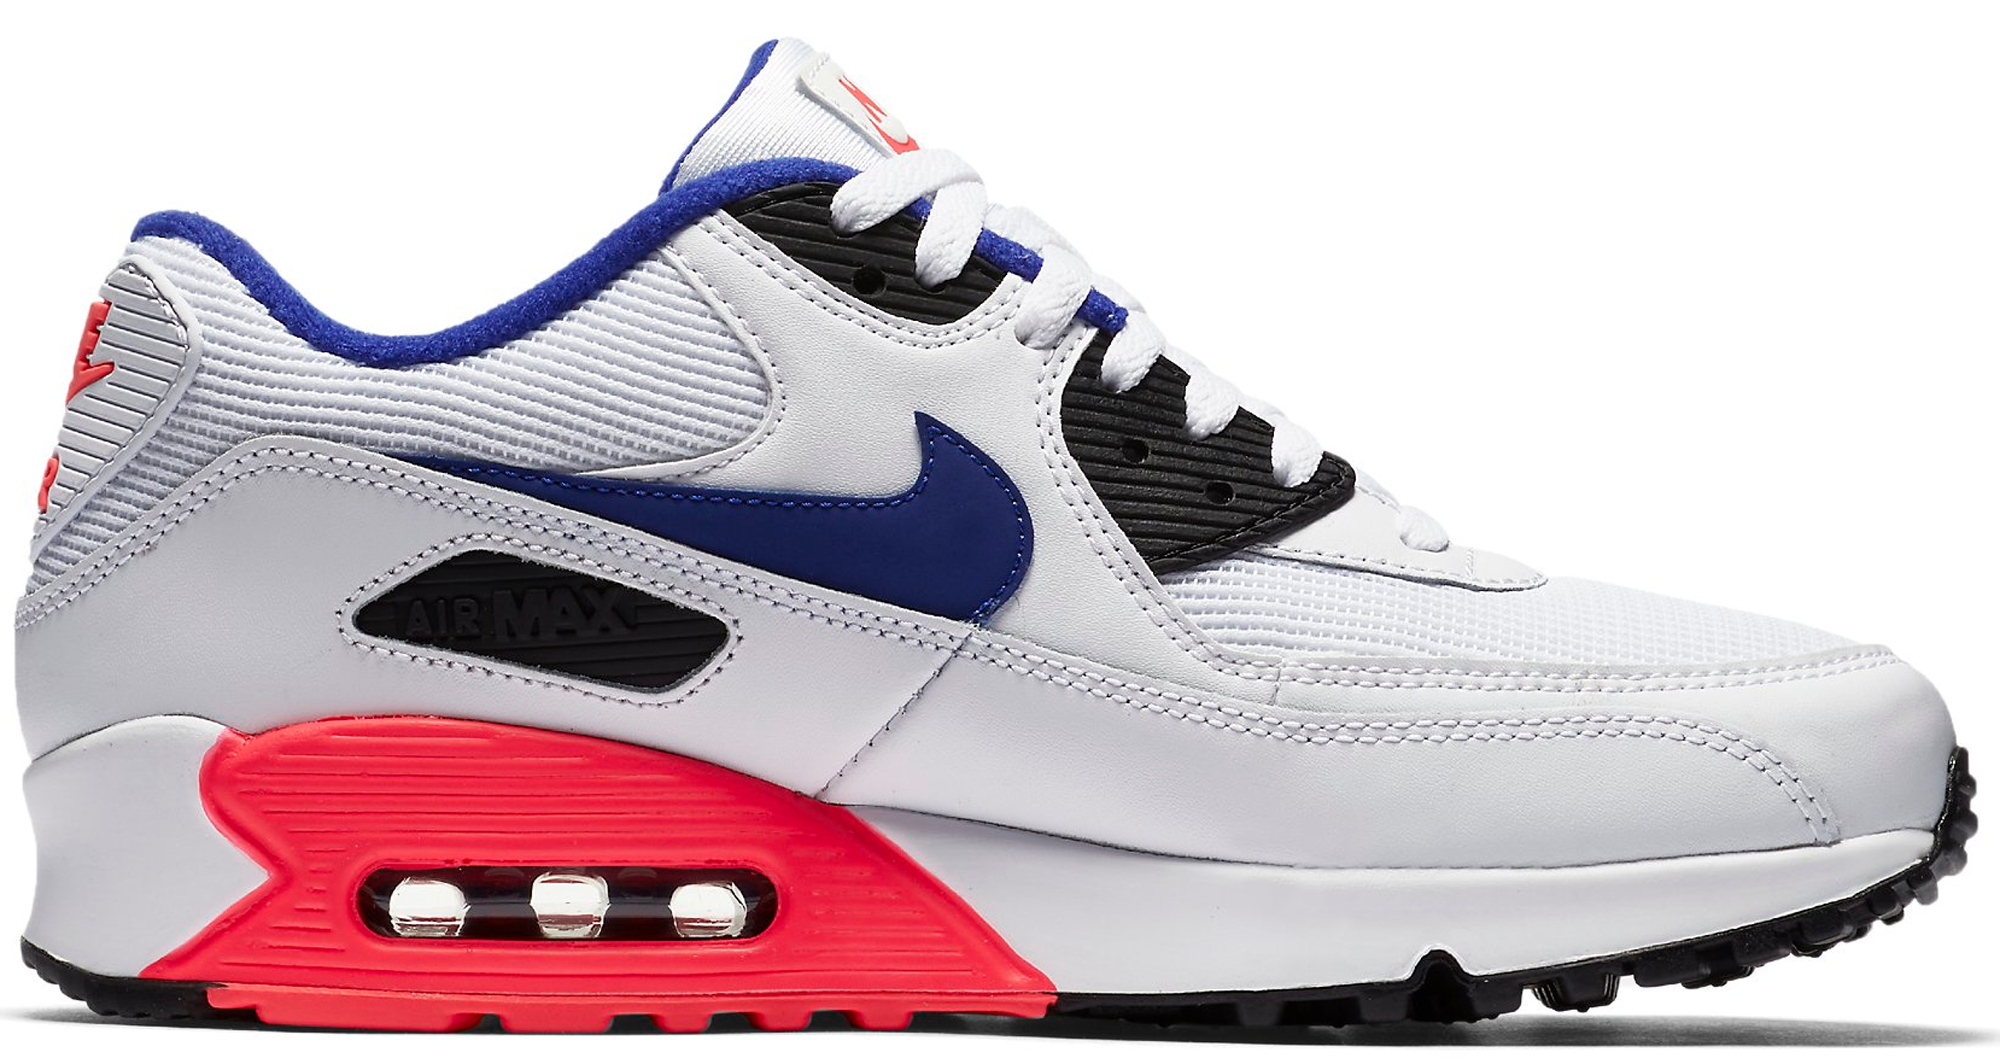 Air Max 90 Ultramarine Lorikeet